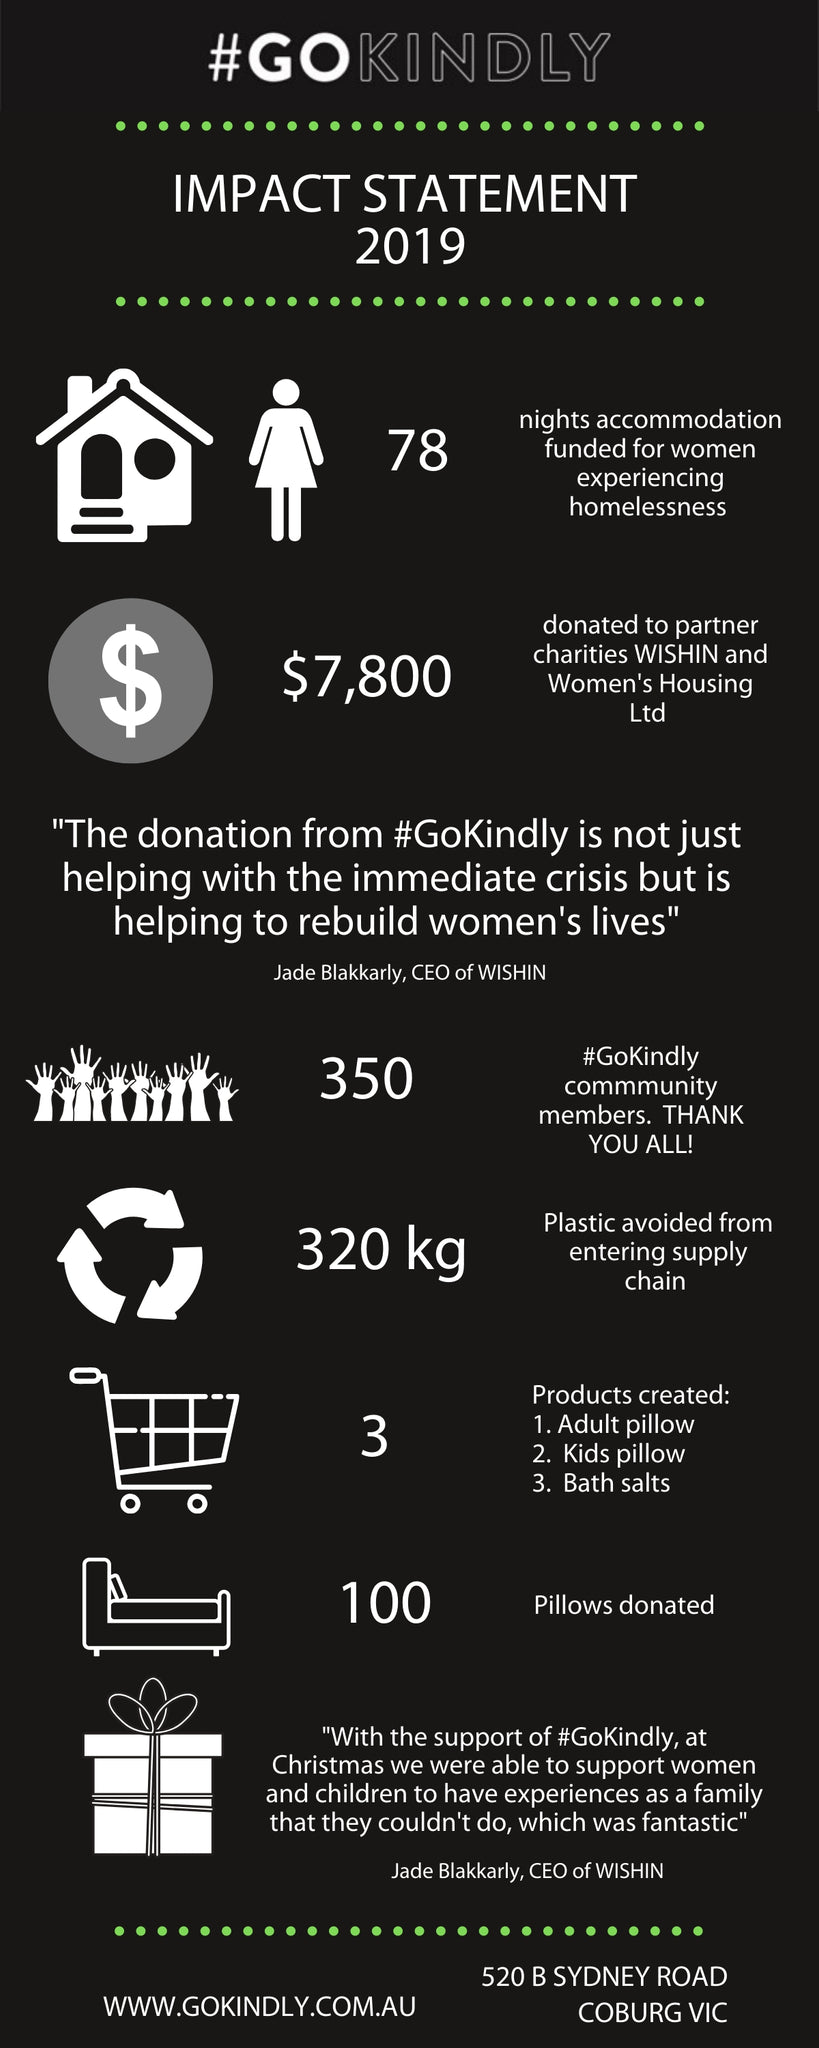 #GoKindly impact statement 2019.  78 nights accommodation for women experiencing homelessness.  $7,800 donated.  100 pillows donated.  The donation from #GoKindly  is not just helping with the immediate crisis but is helping to rebuild women's lives. WISHIN charity.